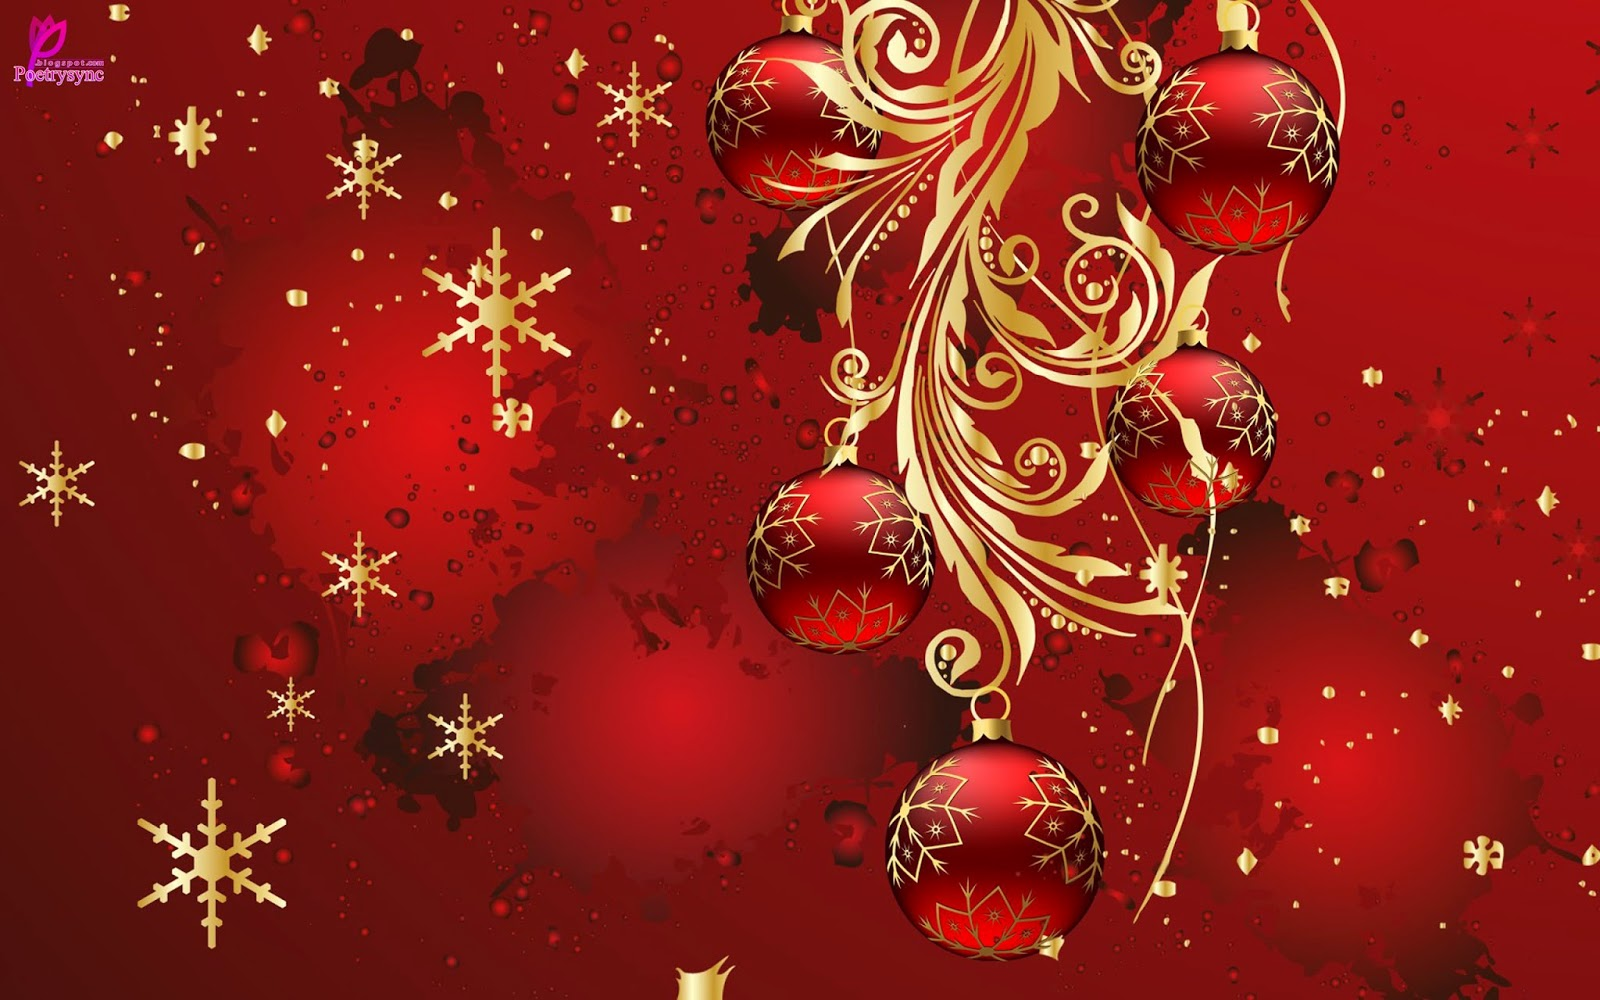 Merry Christmas Wallpapers Christmas Wishes Greetings